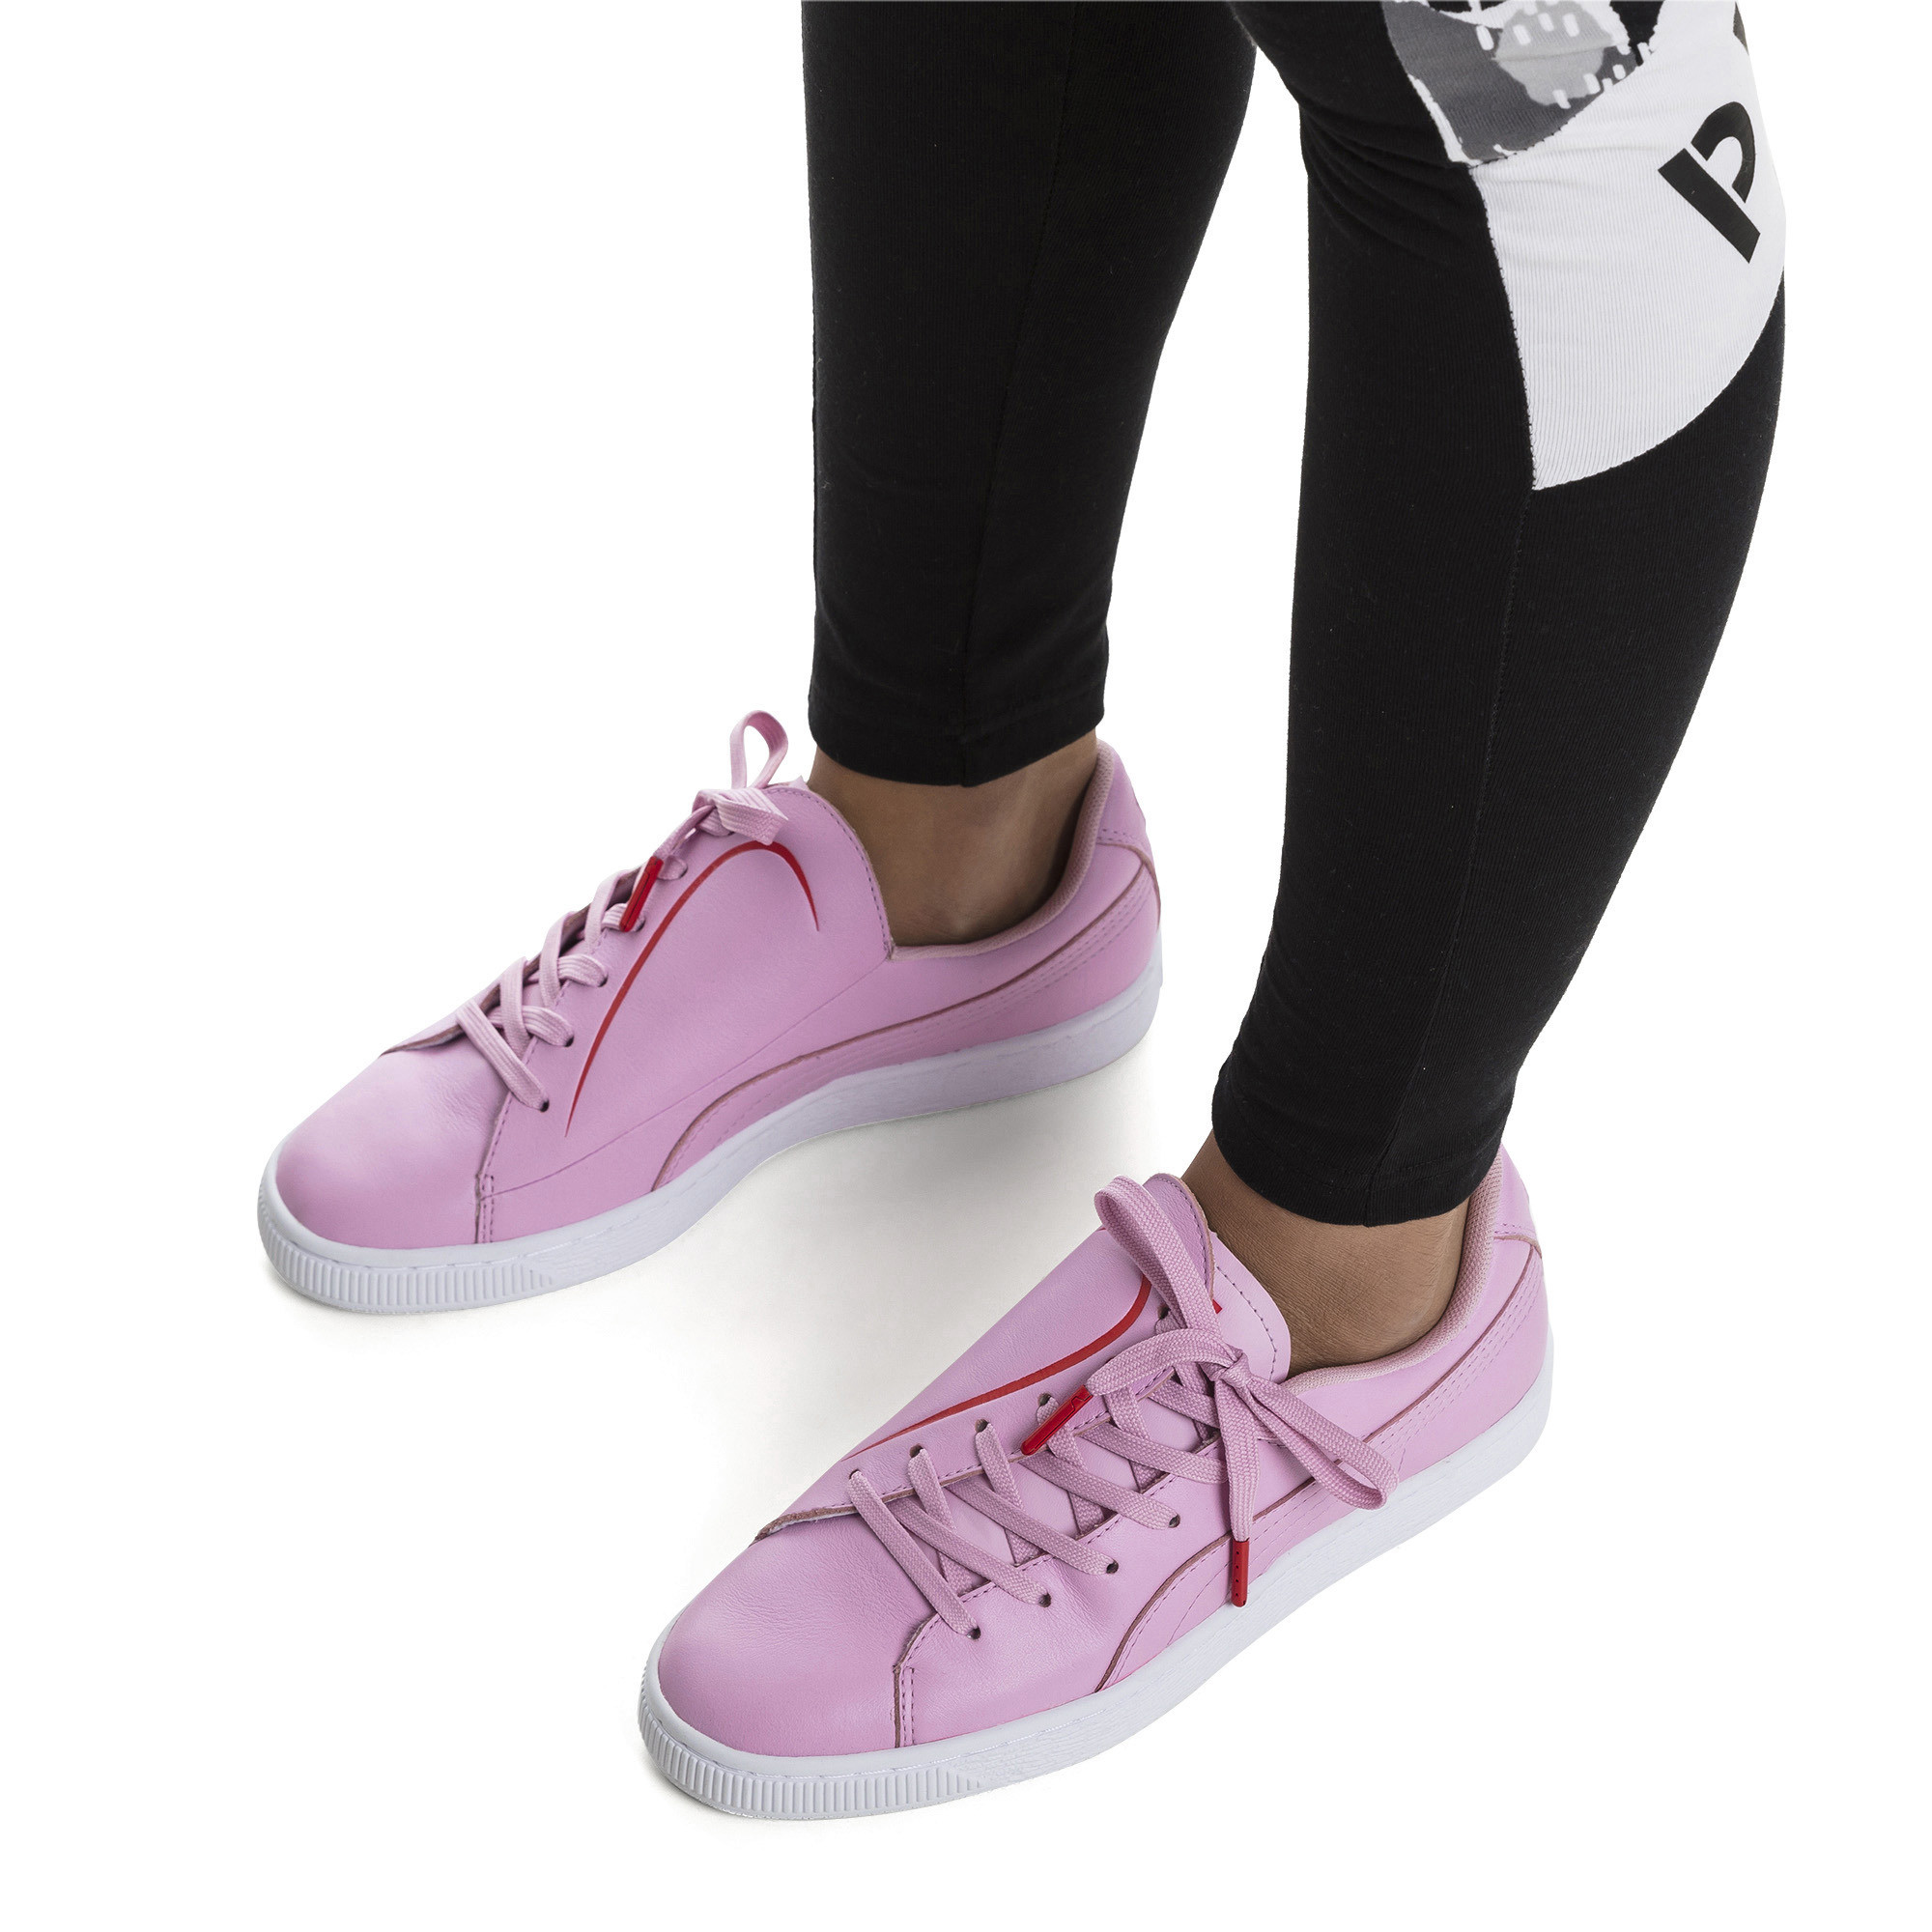 PUMA-Women-039-s-Basket-Crush-Emboss-Heart-Sneakers thumbnail 11